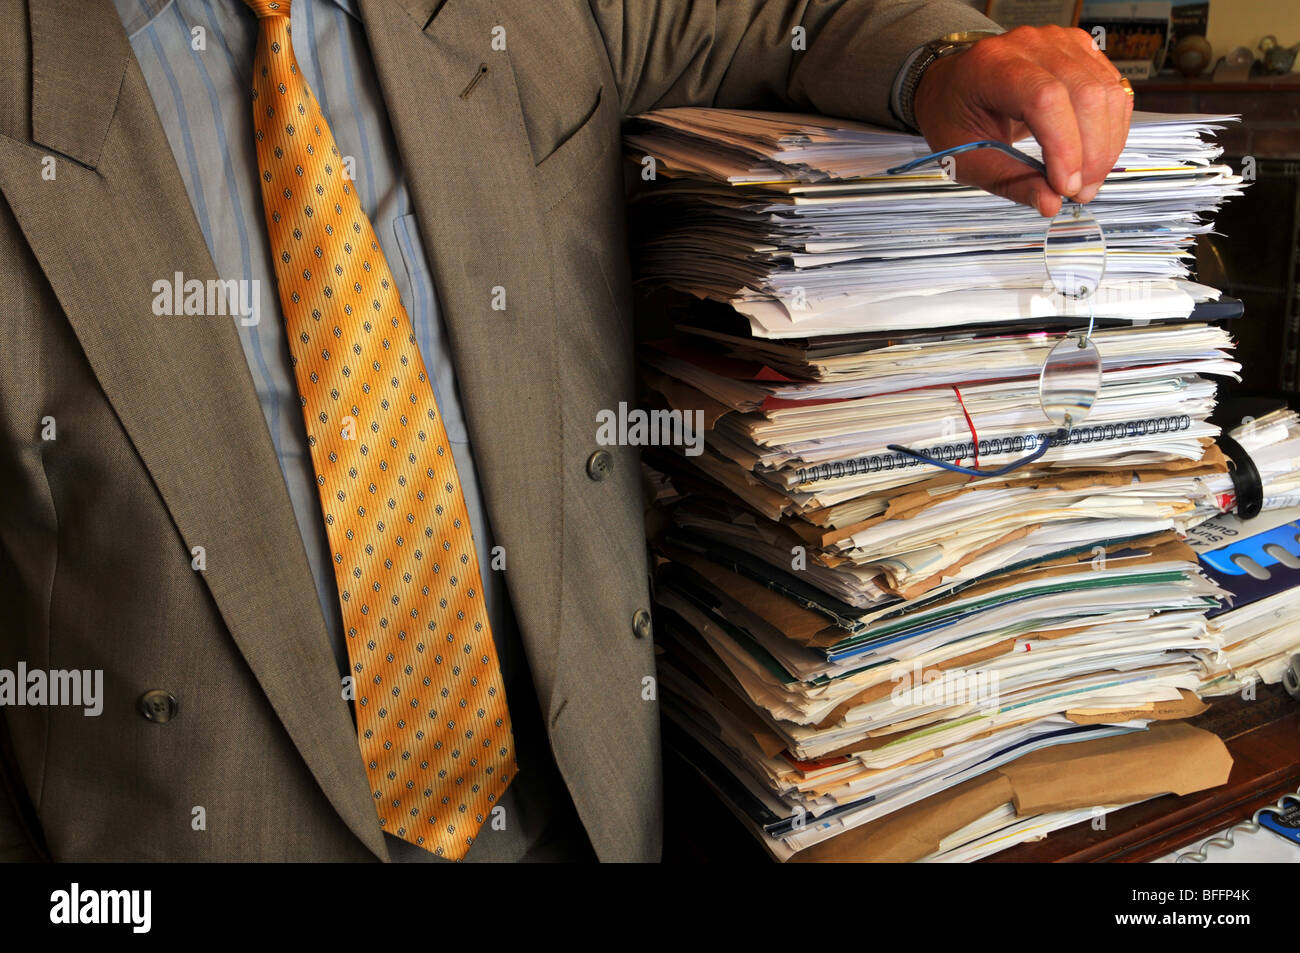 Businessman leaning on a stack of paperwork, overworked office worker or manager with pile of documents - Stock Image